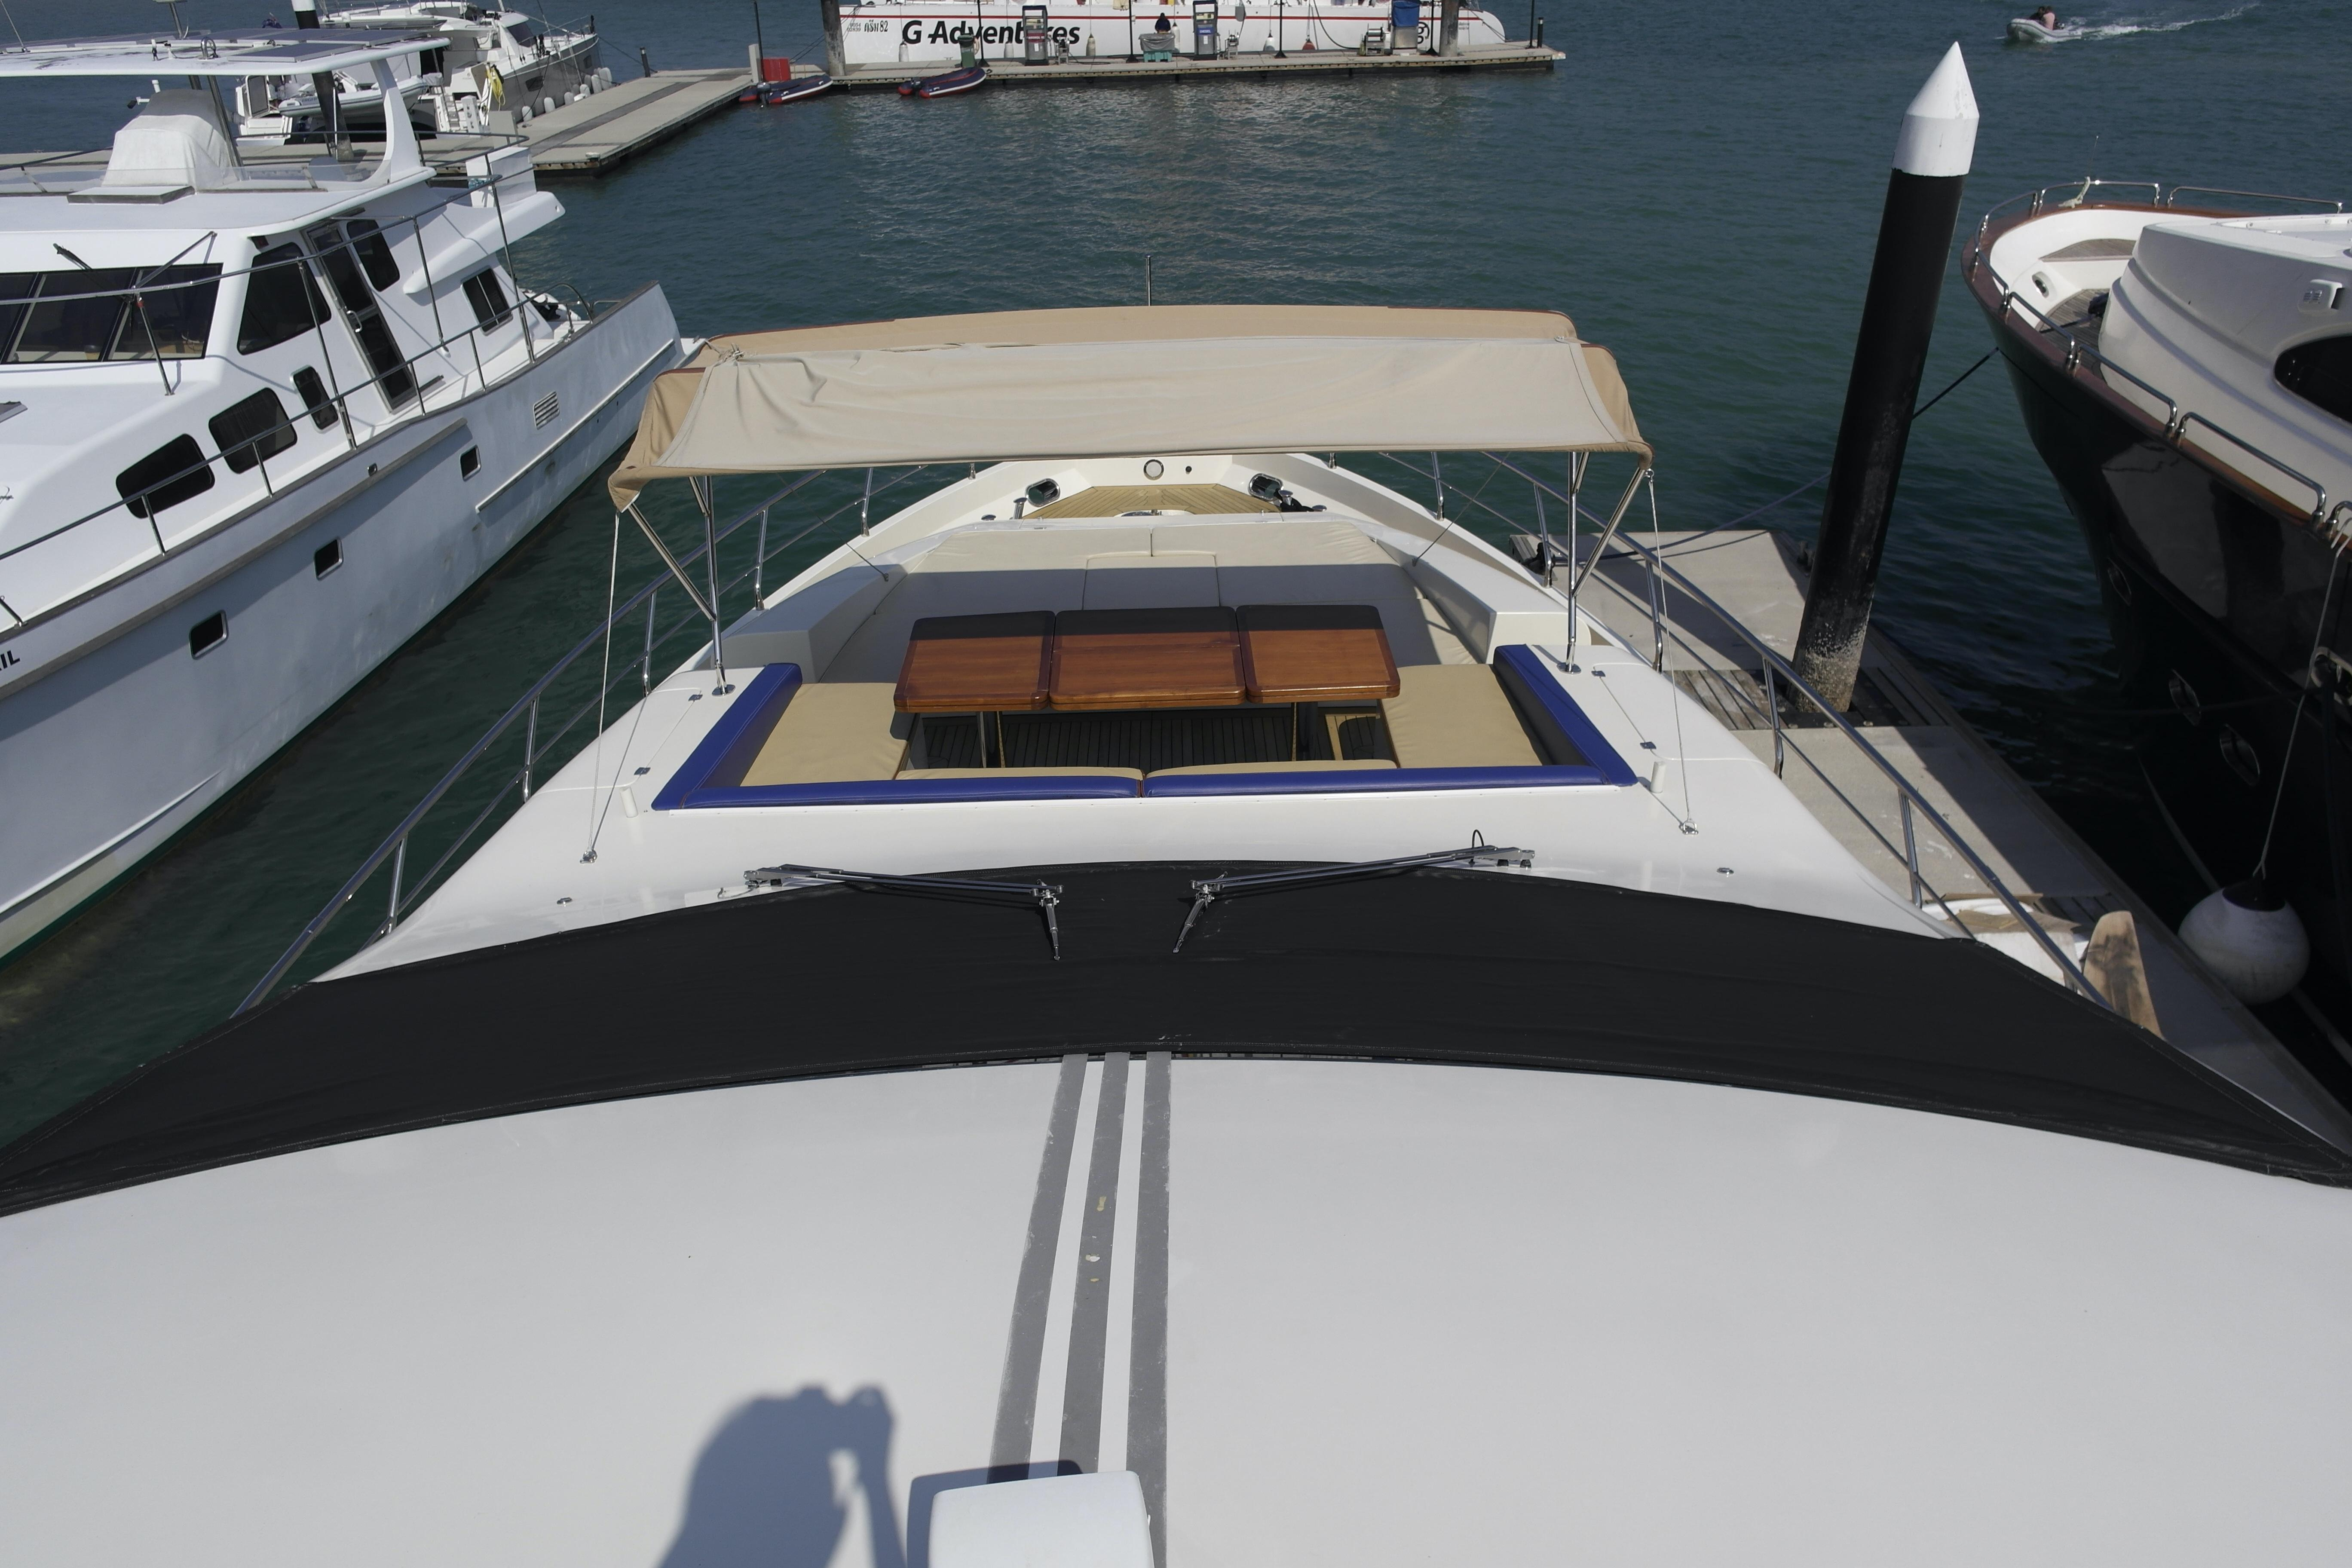 Bow seating and canopy